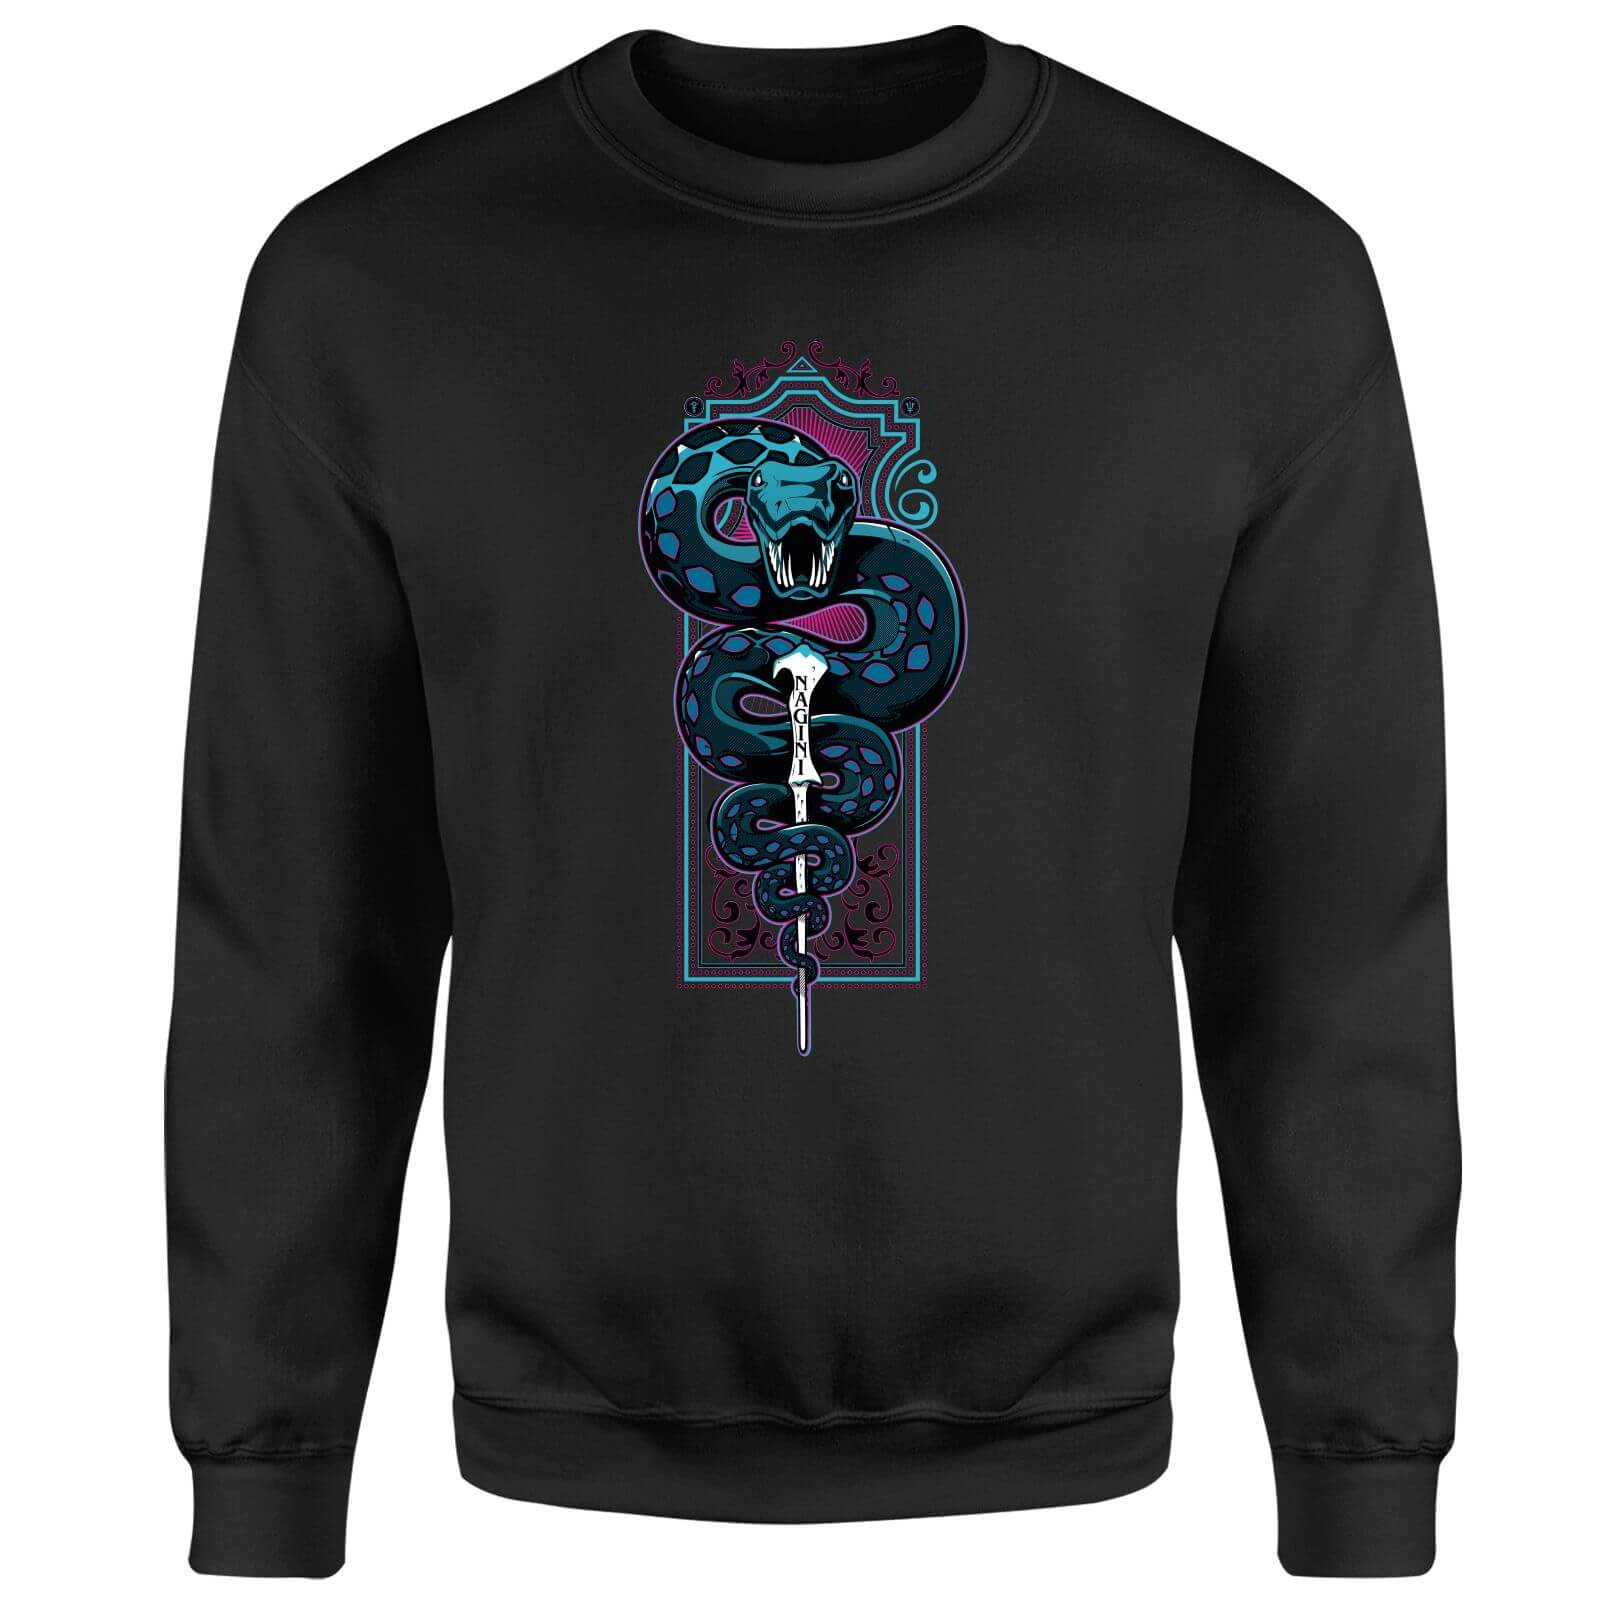 Harry Potter Neon Basilisk Sweatshirt - Black